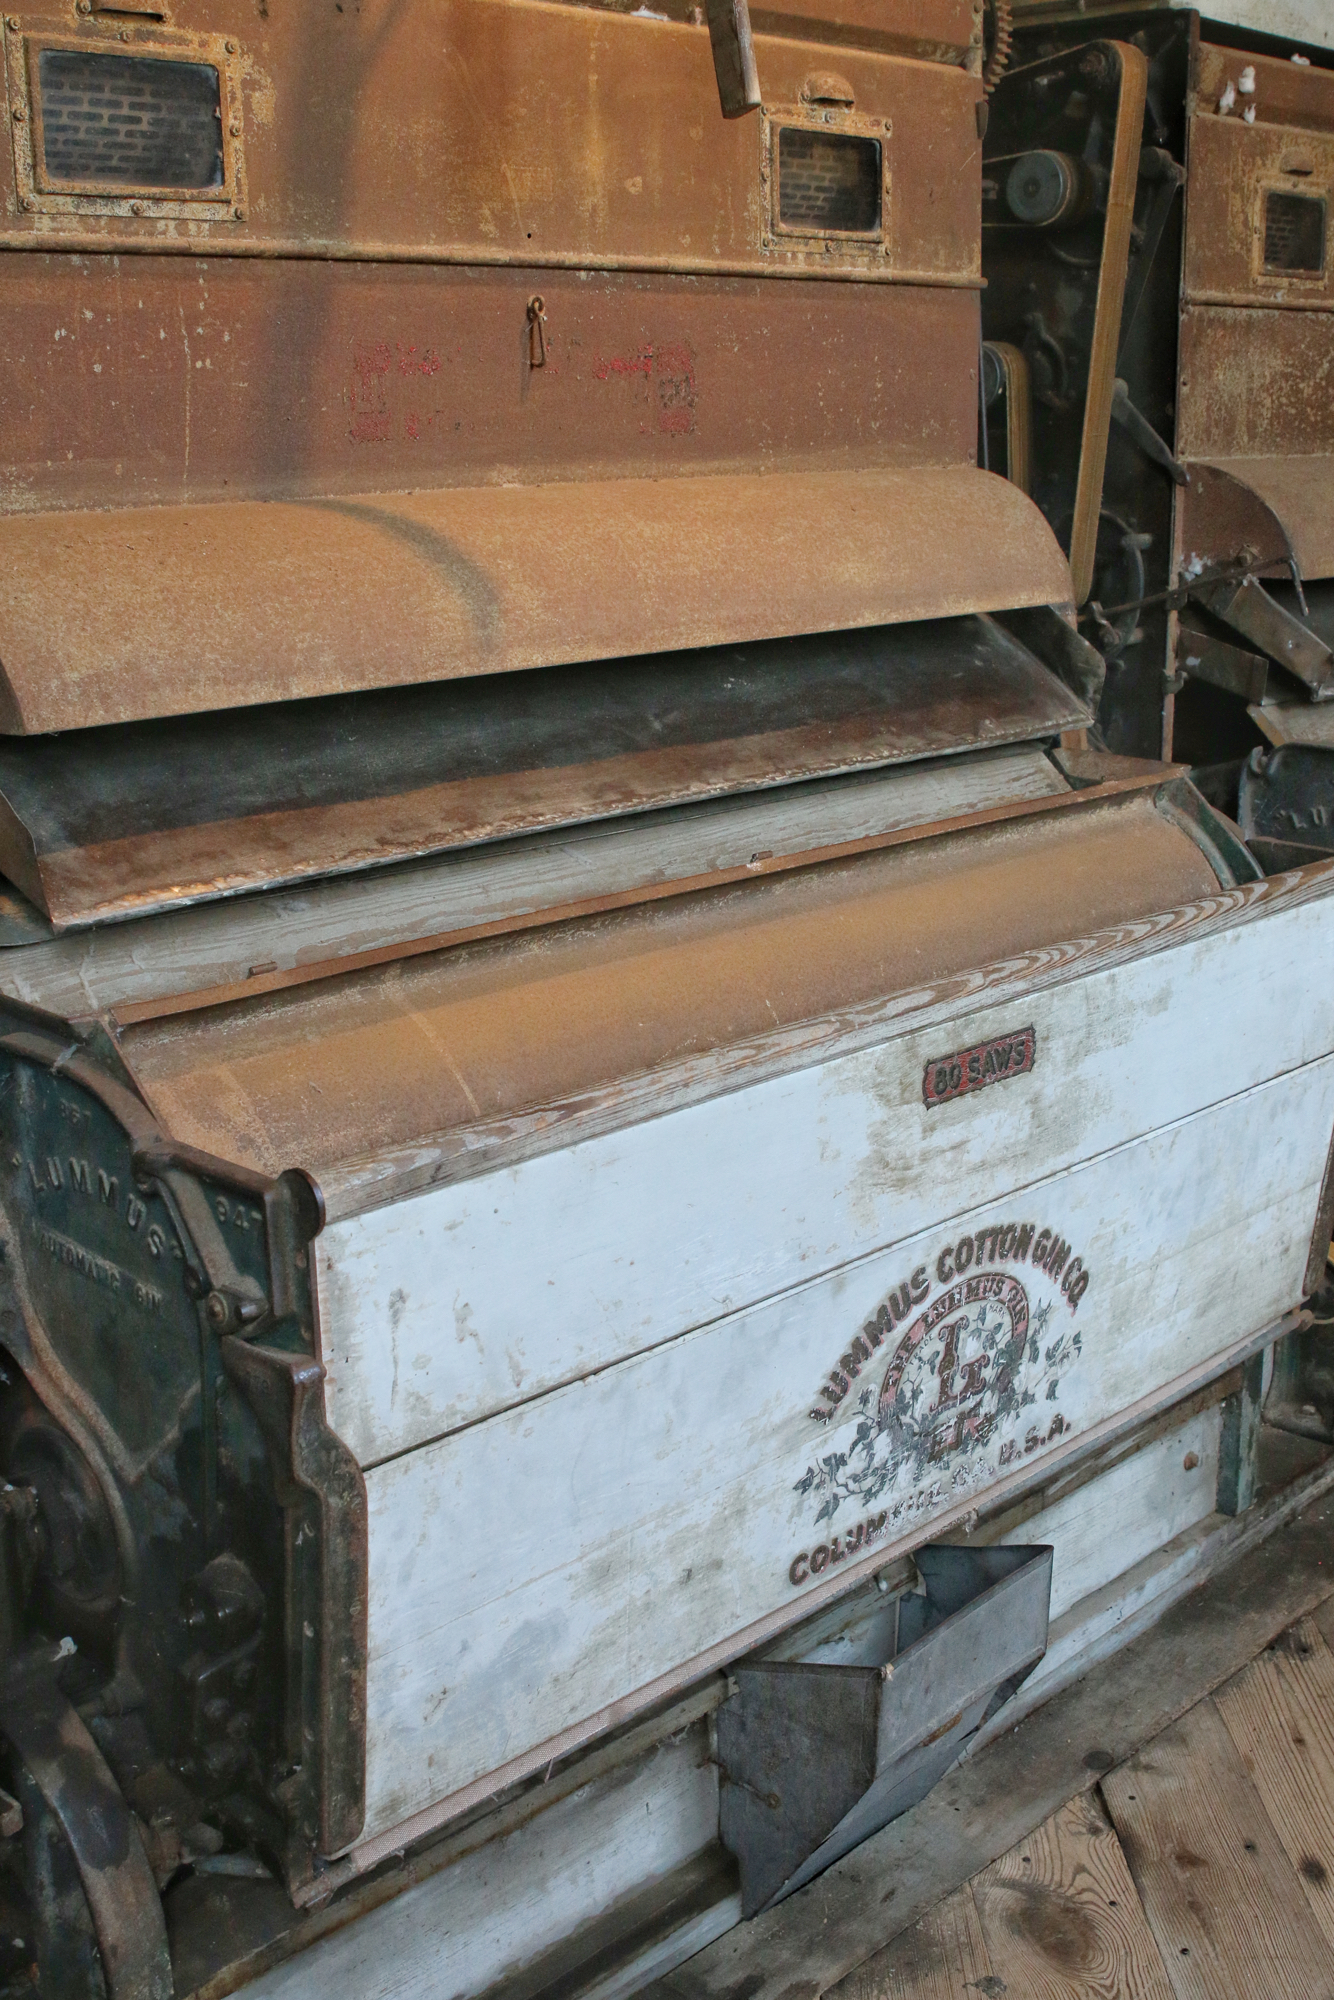 see how the cotton gin process works